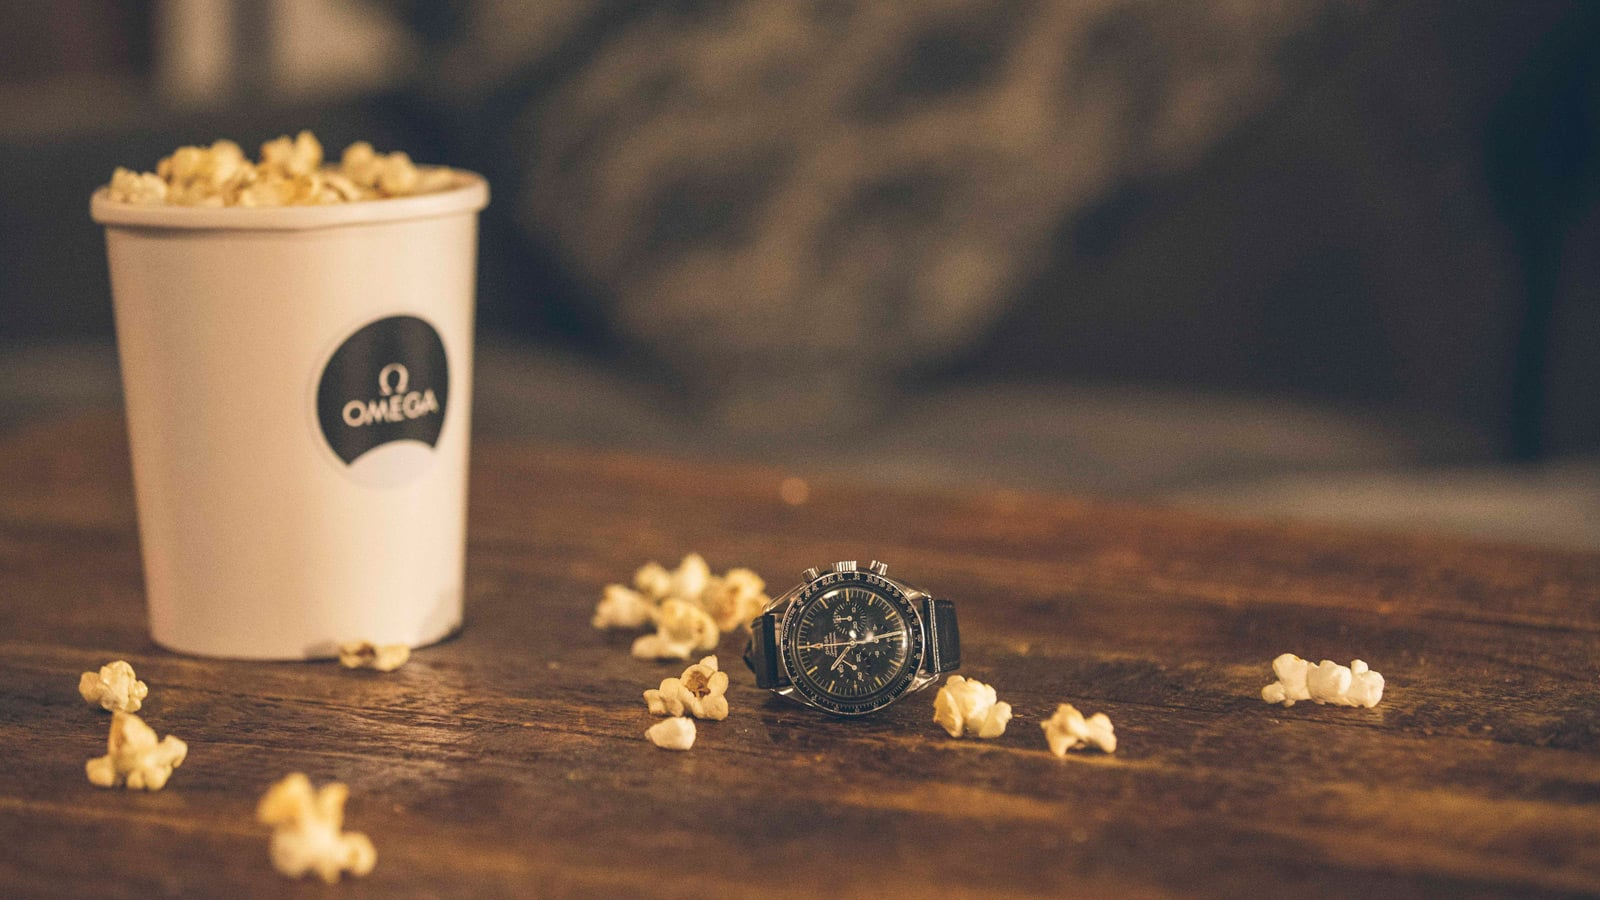 Box of popcorn and a black omega watch on a table